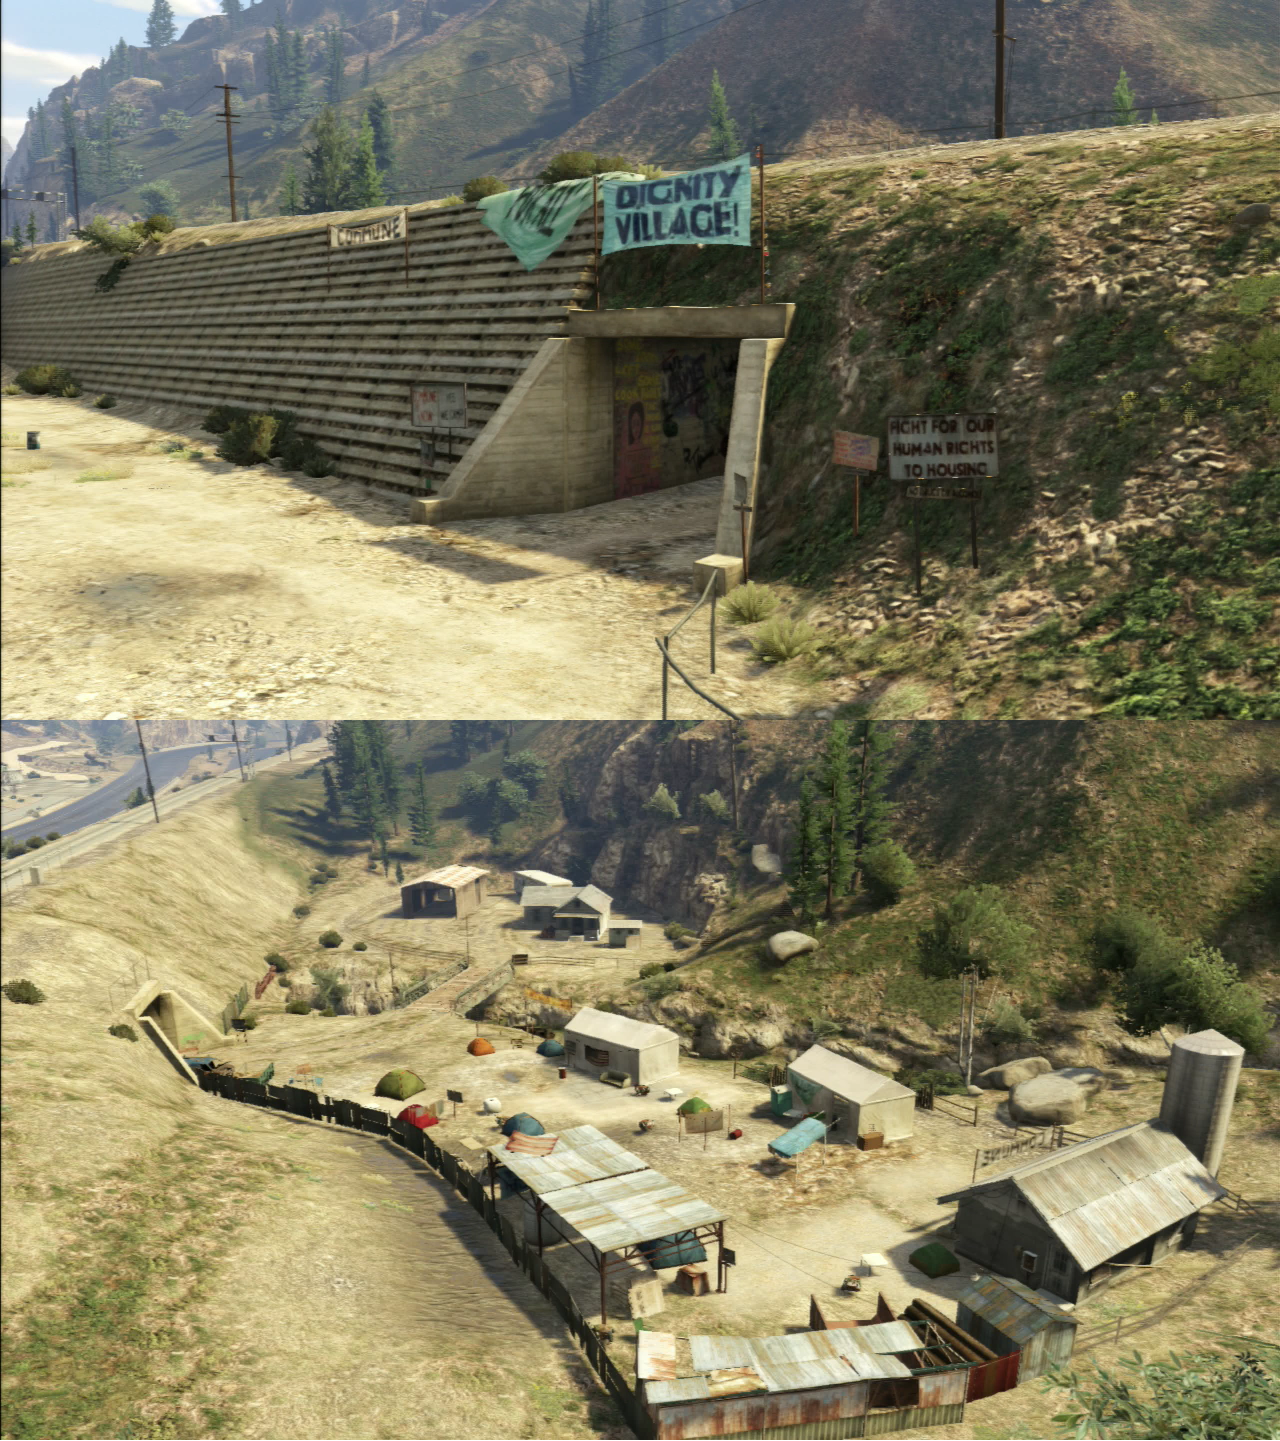 gtav map with Dignity Village on Gta San Andreas Map Los Santos furthermore GTA V  Spaceship Part  Paleto Forest Highway 1 together with Dignity Village furthermore 457214079015604224 likewise Los Santos Freeway  HD Universe.